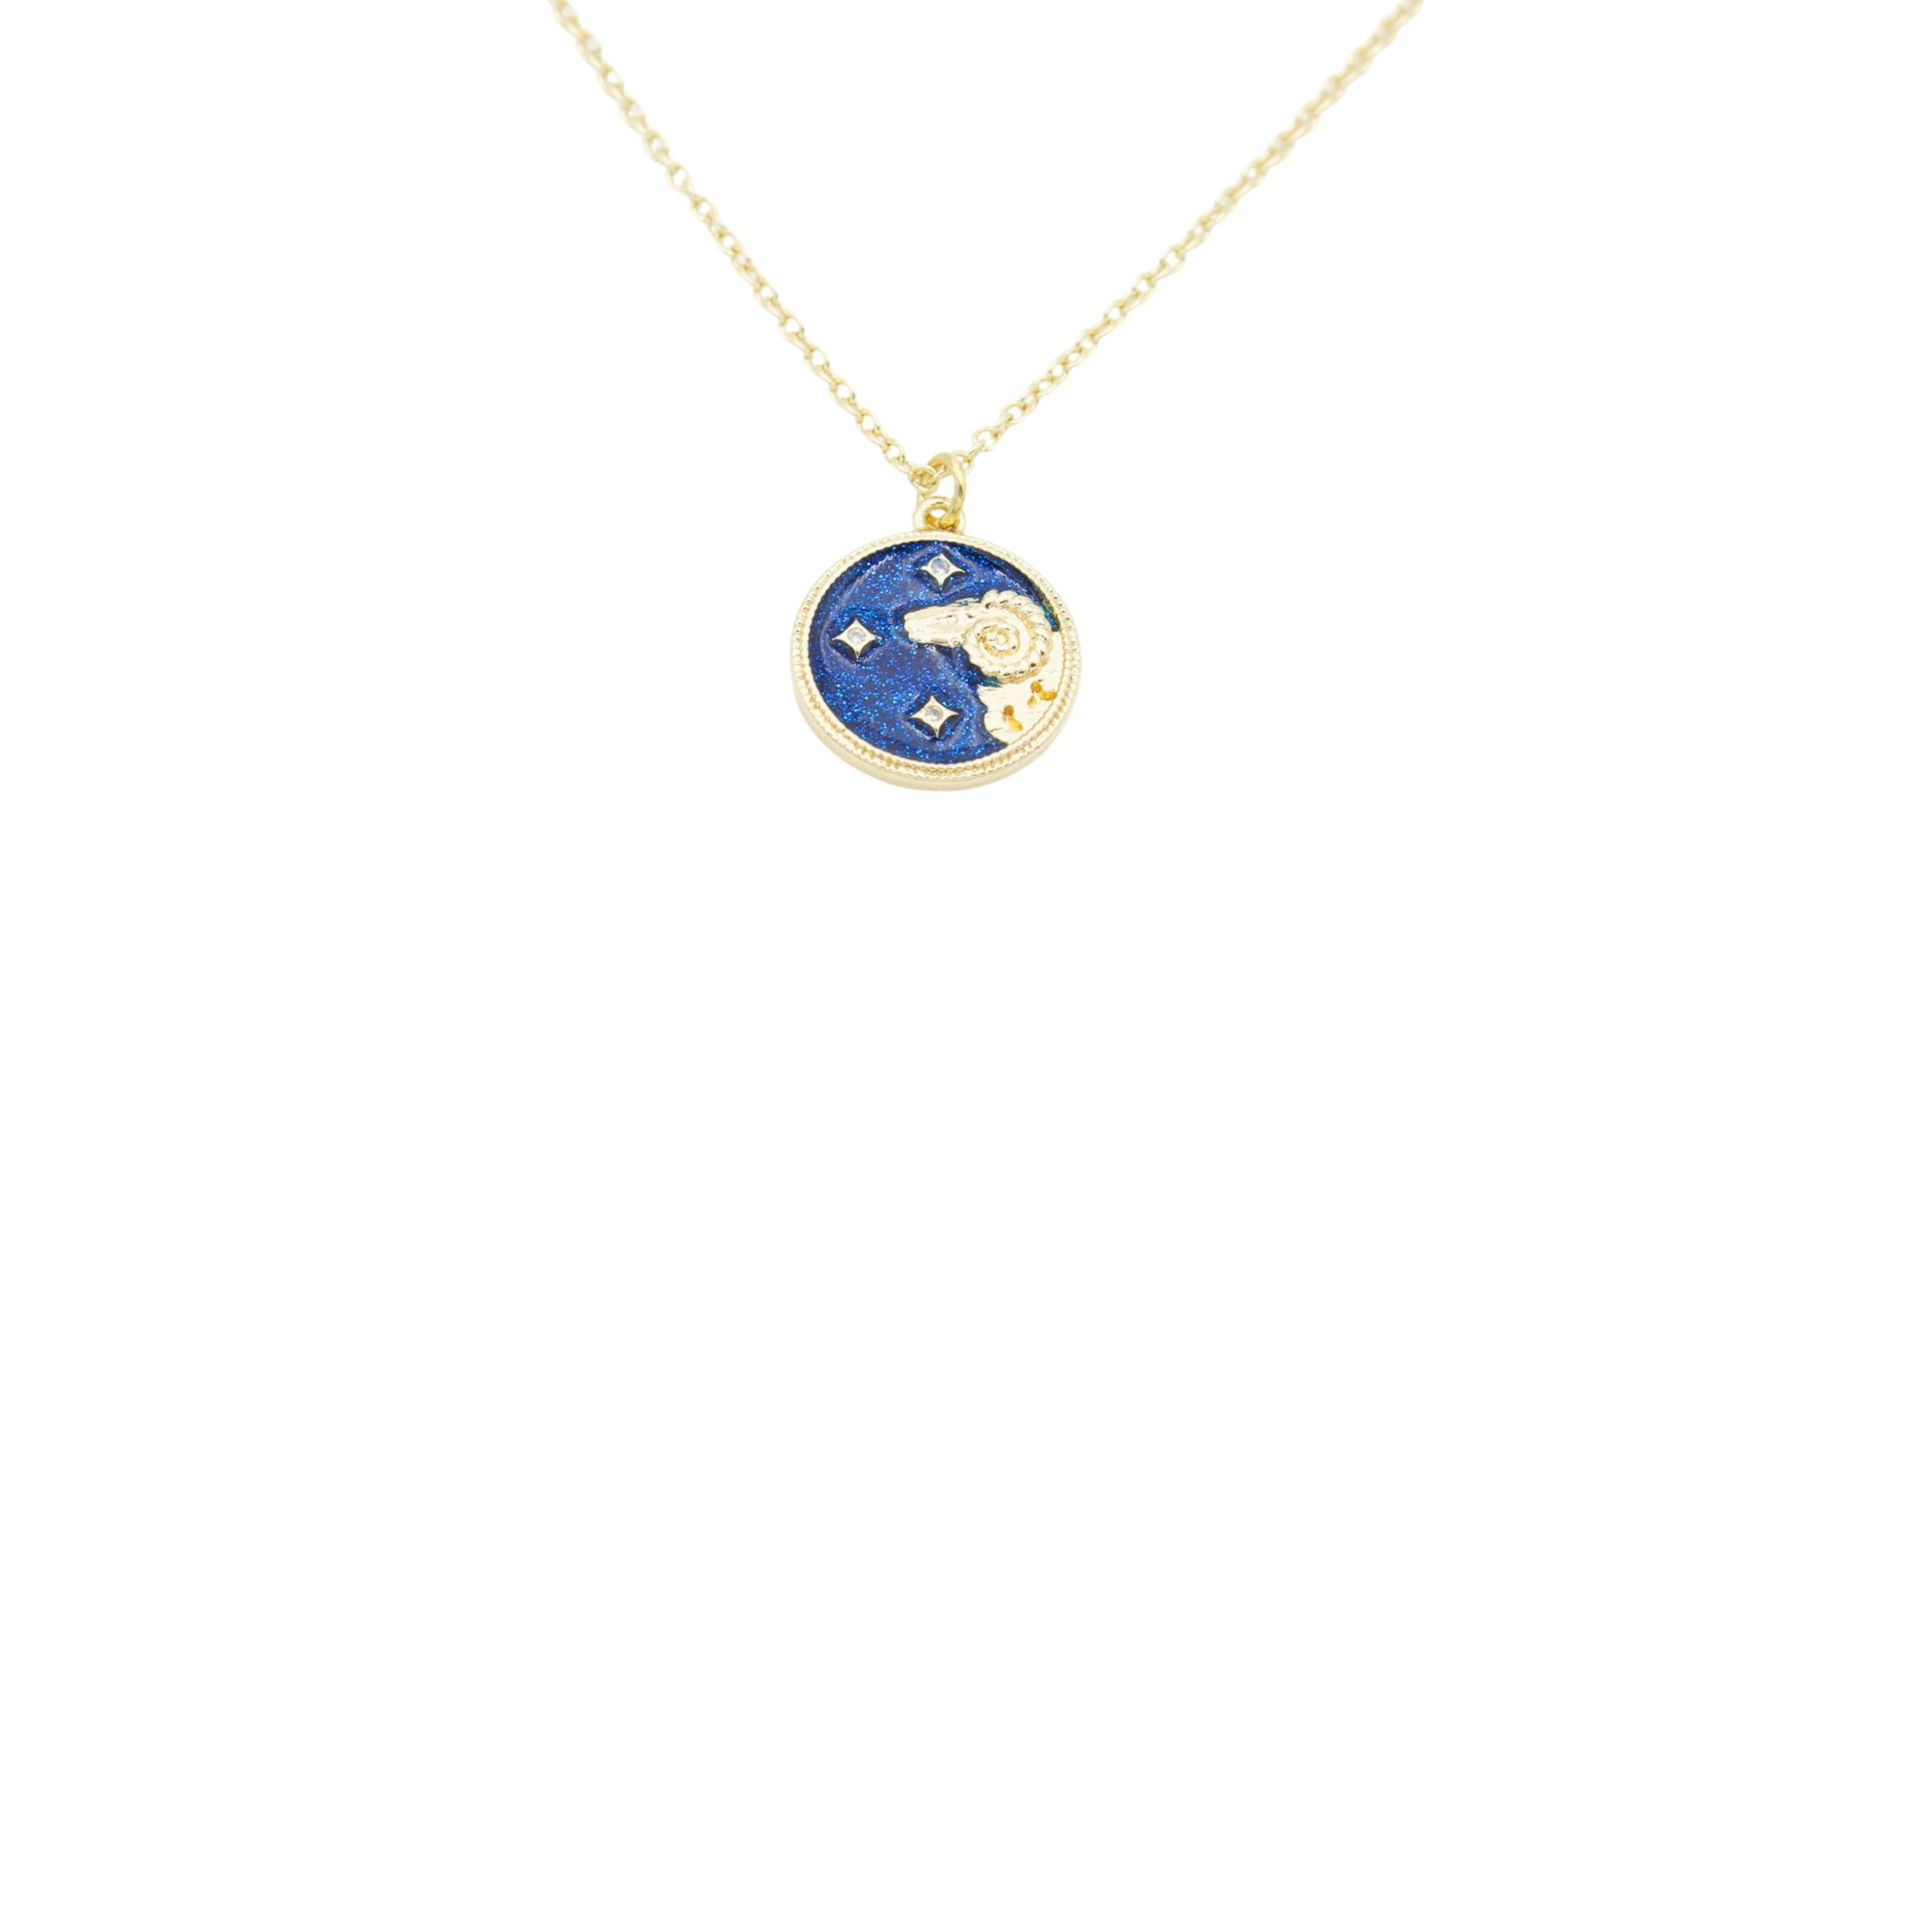 AW Boutique's Zodiac Astro Coin is a dainty pendant full of sparkle and shine.  This piece adds a pop of colour to your everyday wear and at 18 inches is a great length to mix and layer your other chains with.  Proudly wear either your own star sign or the star sign of a loved one close to your heart.  Zodiac shown is Aries.